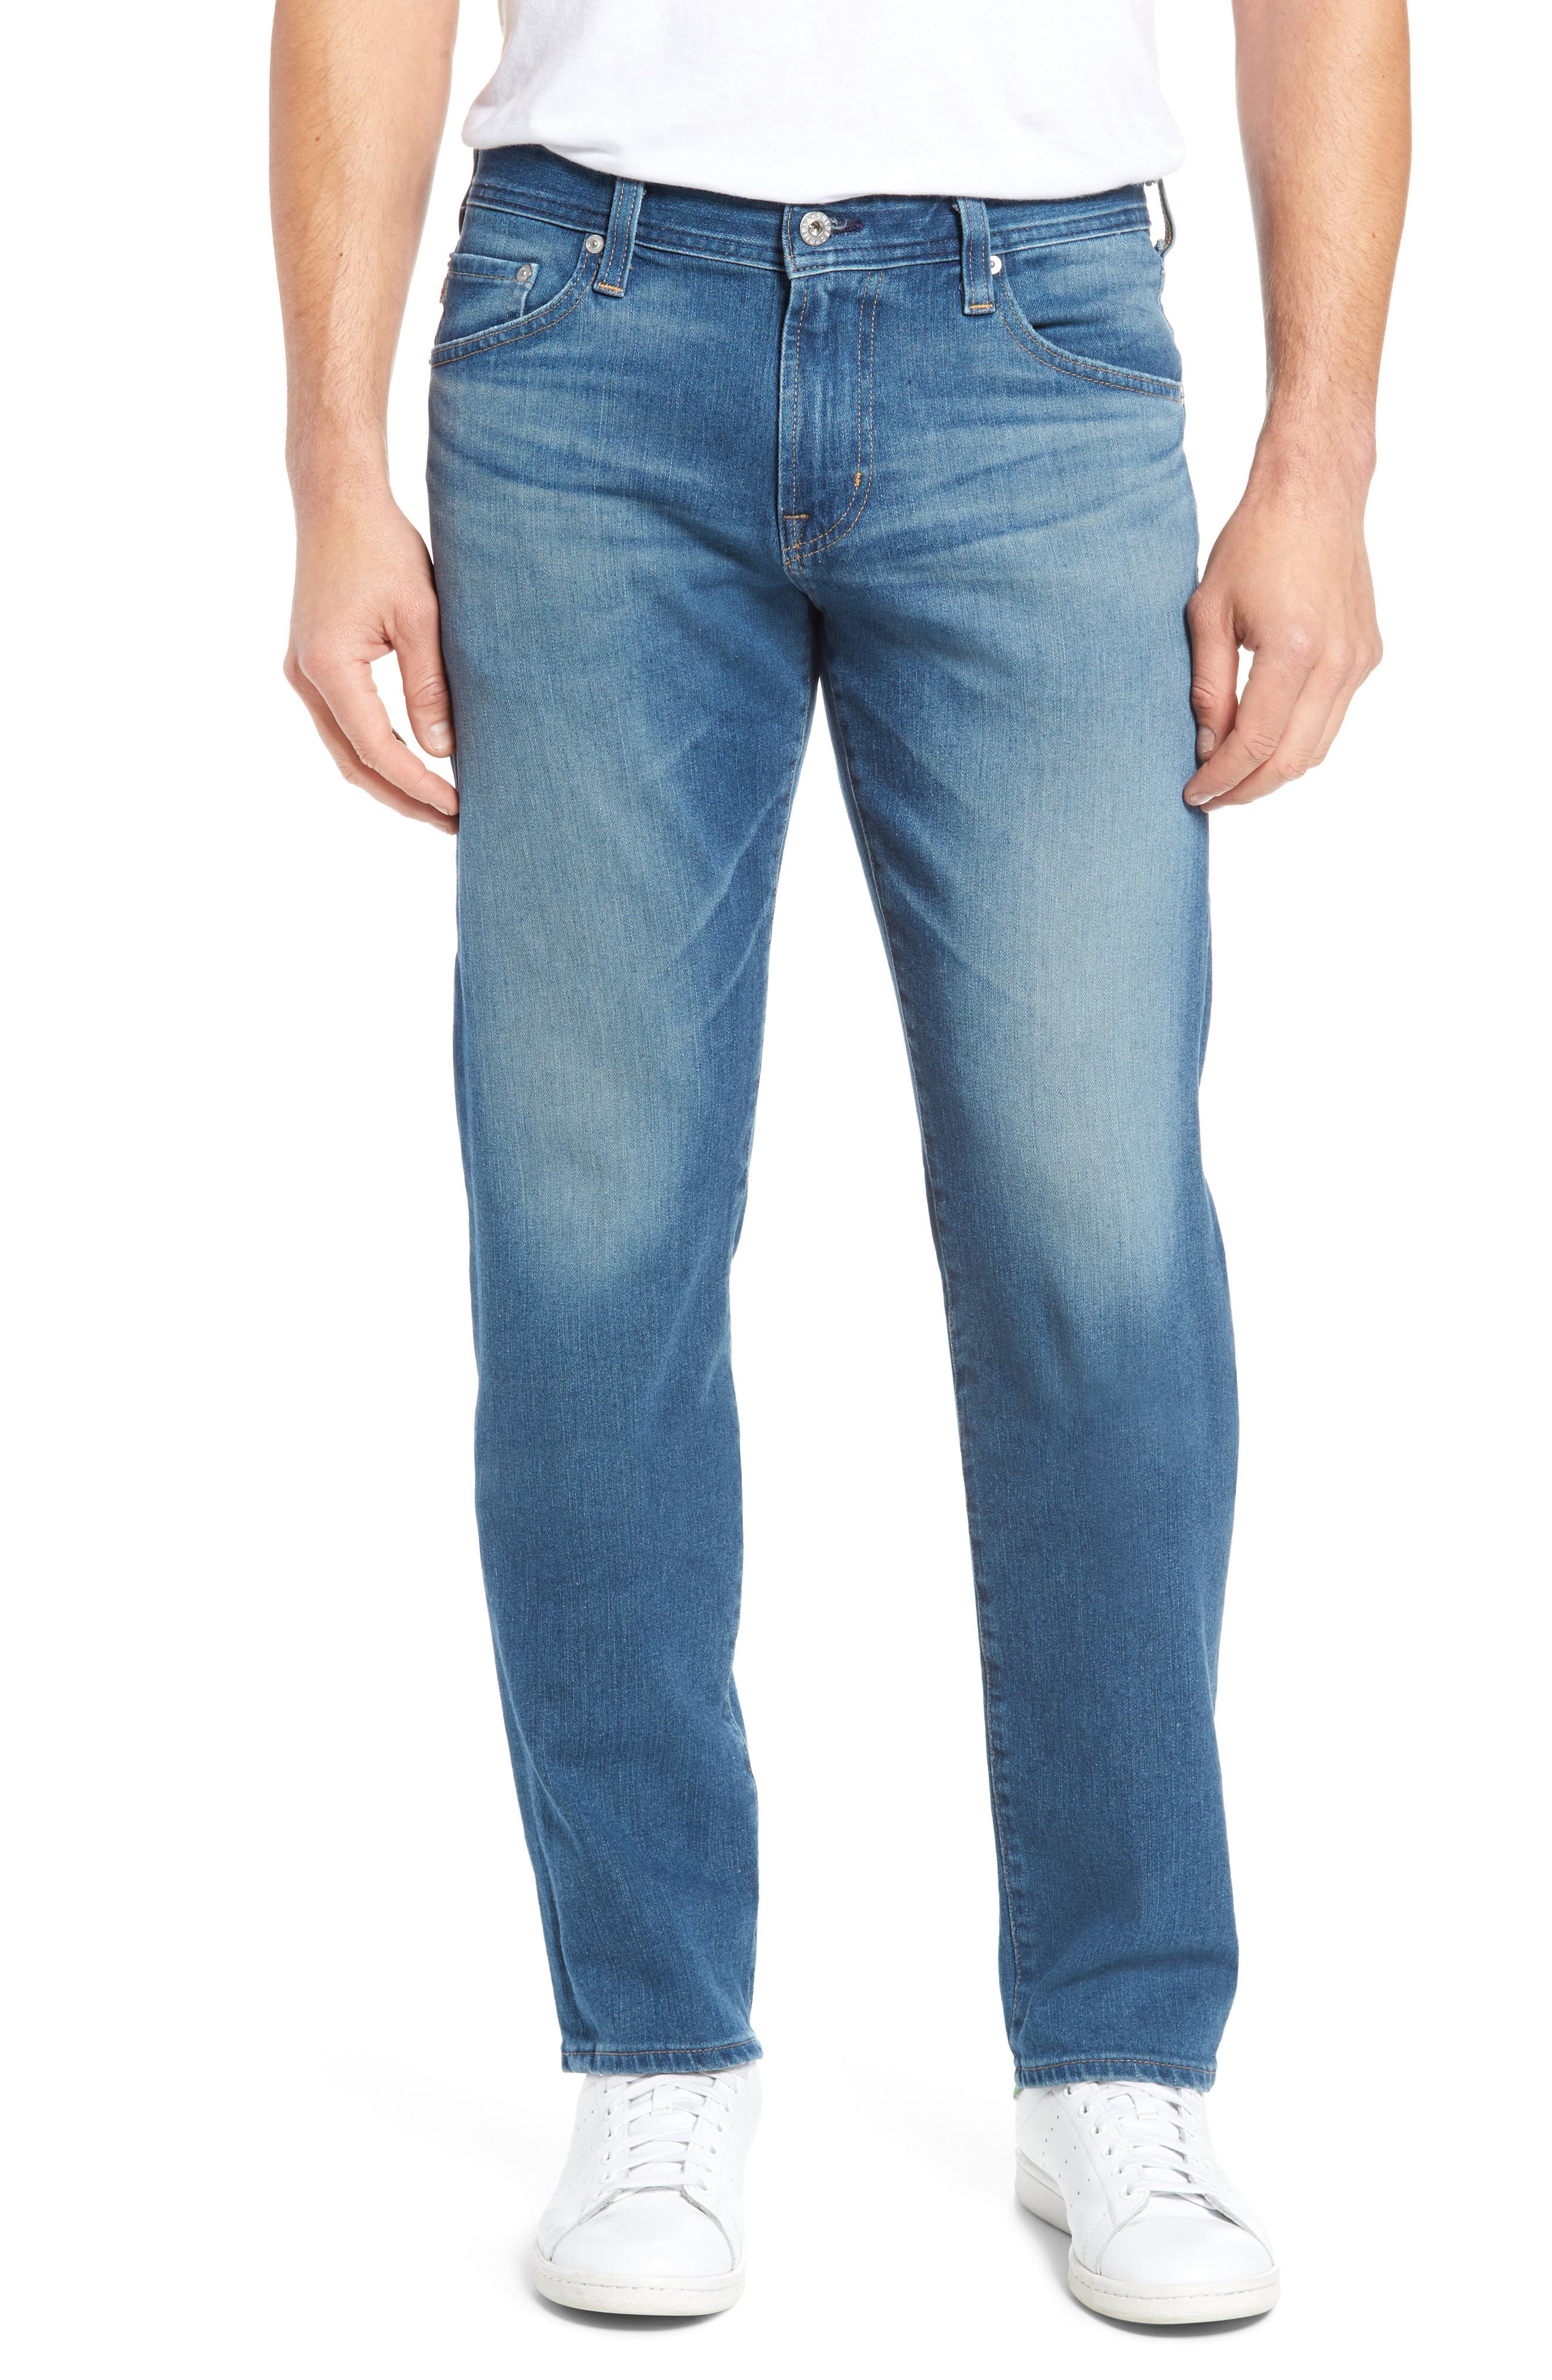 Graduate Slim Straight Fit Jeans,                         Main,                         color, Typewriter